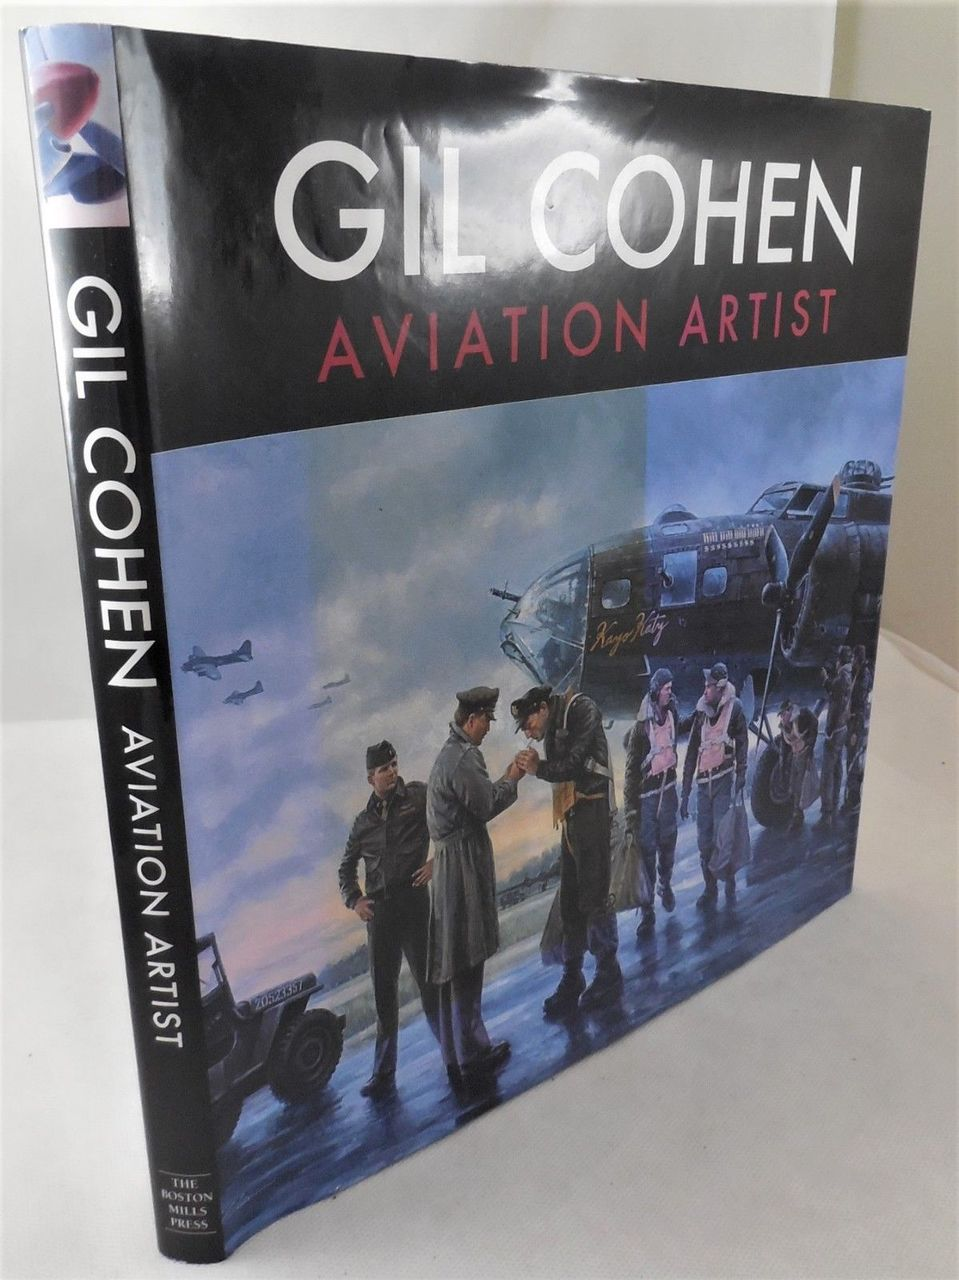 GIL COHEN: AVIATION ARTIST - 2009 [Signed]